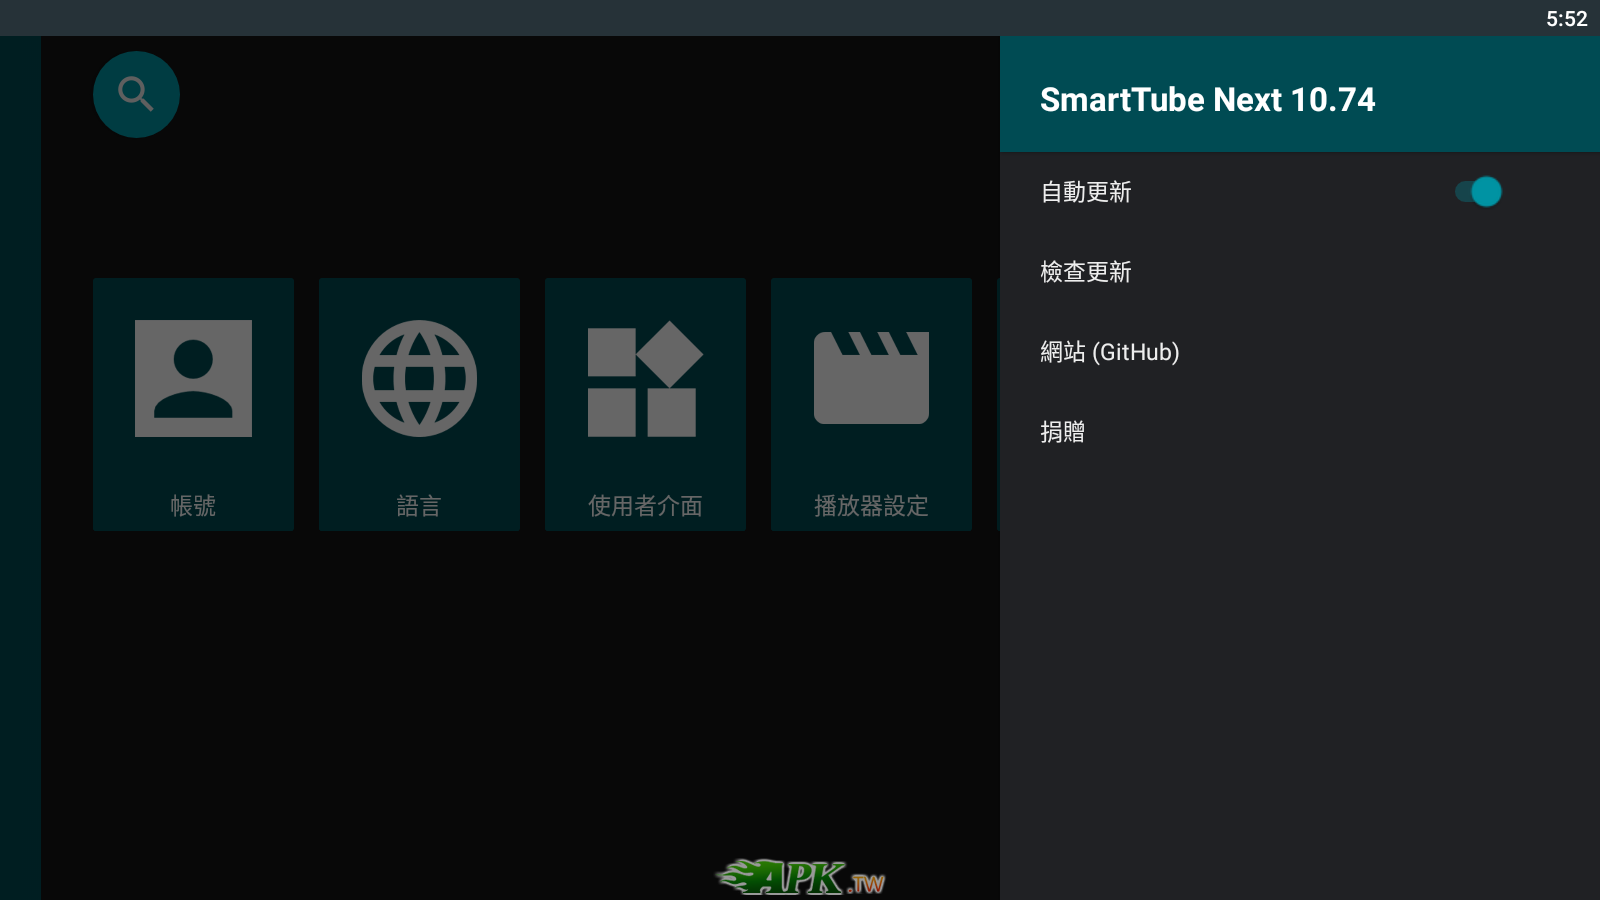 com.liskovsoft.smarttubetv.bet_Screenshot_2021.01.12_17.52.09.jpeg